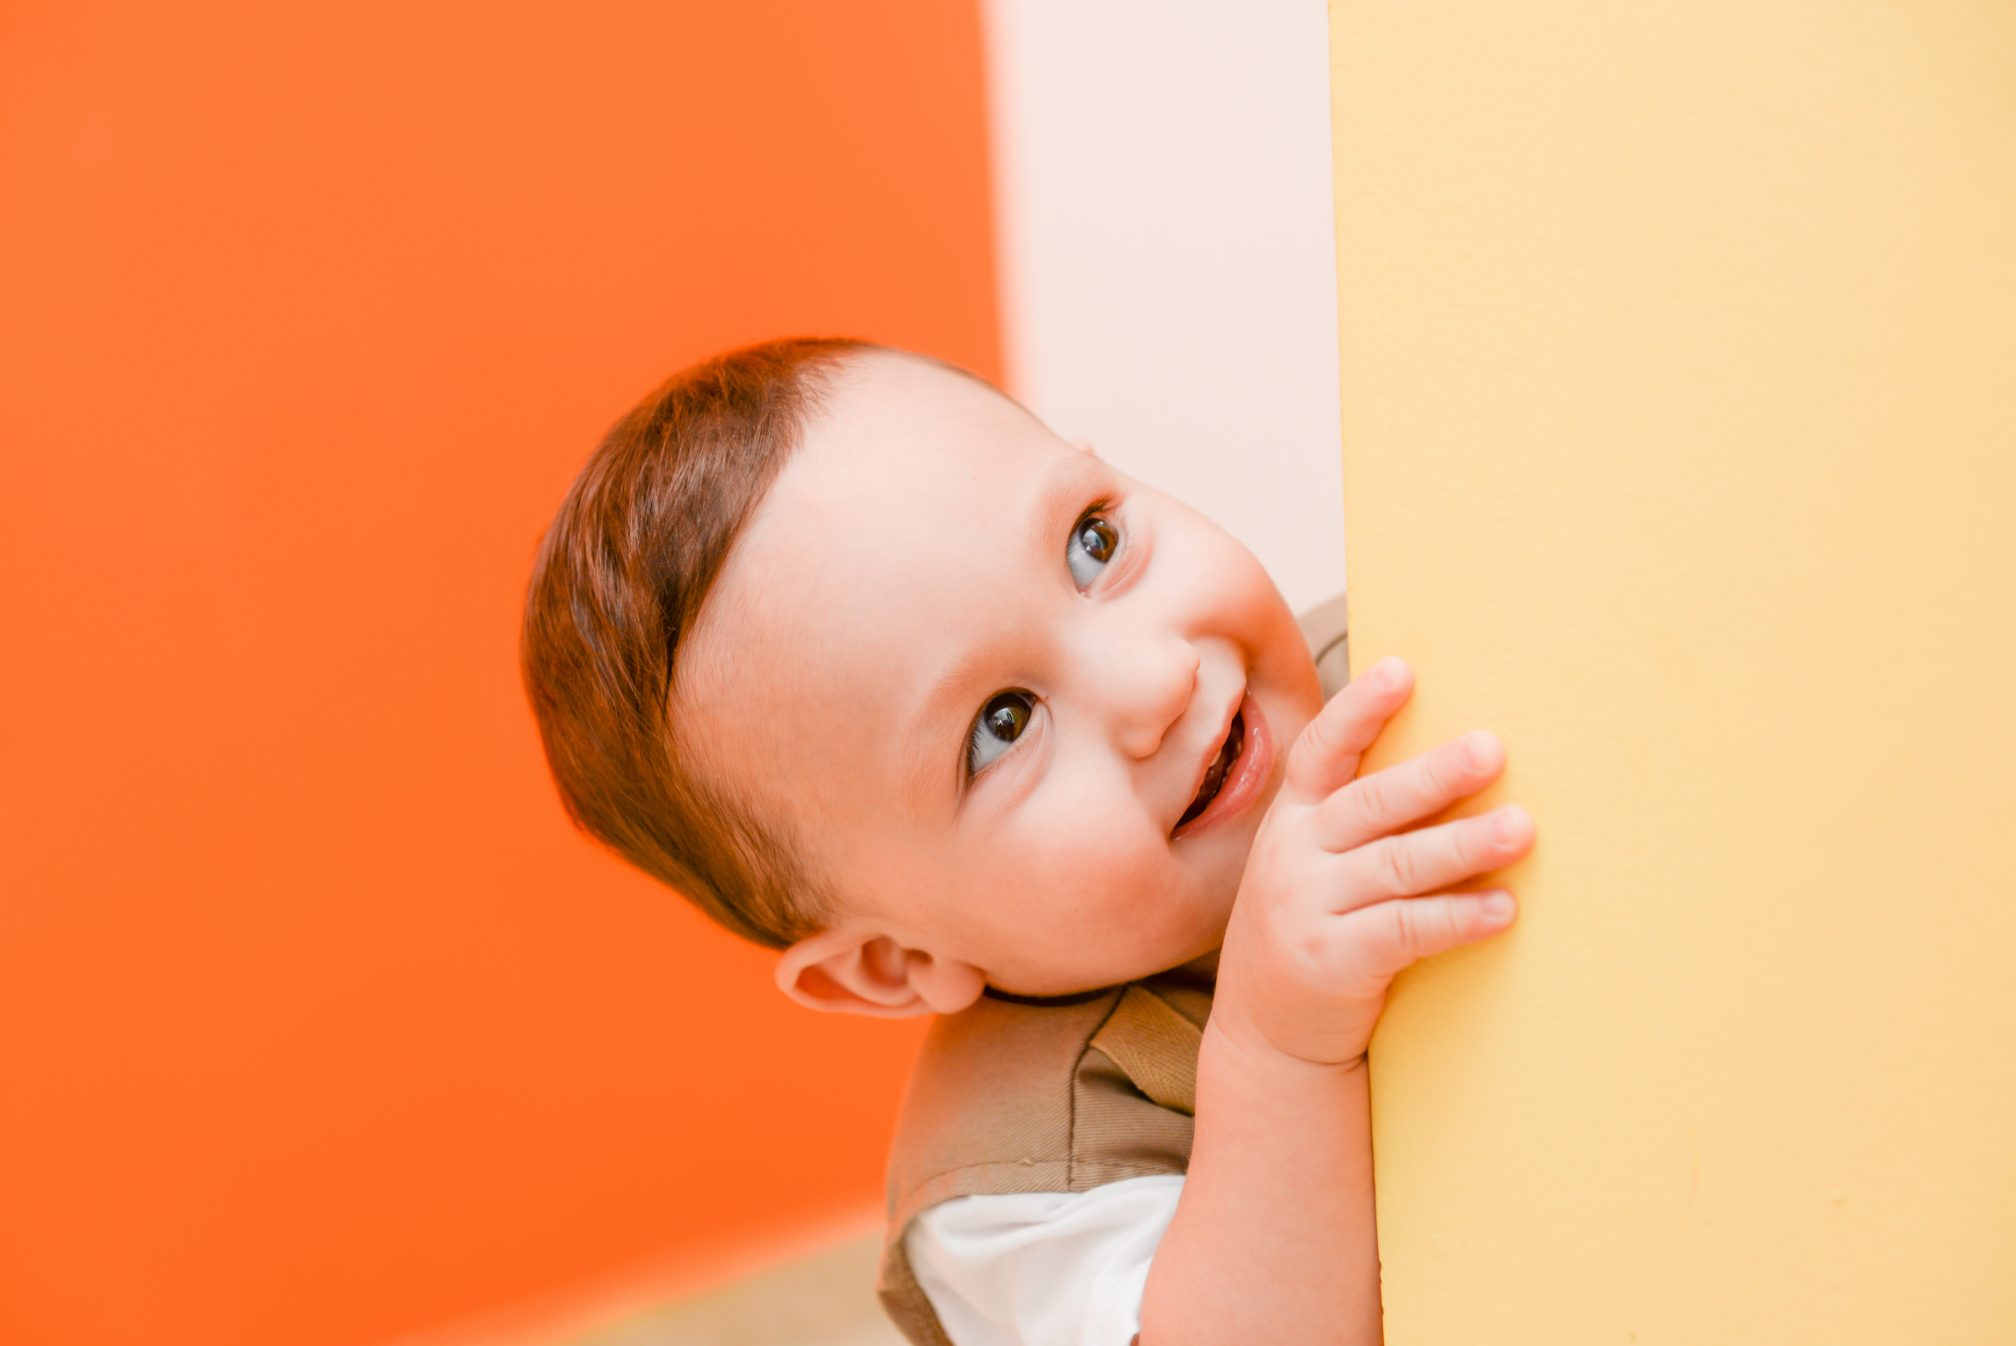 Smiling toddler peeking around corner